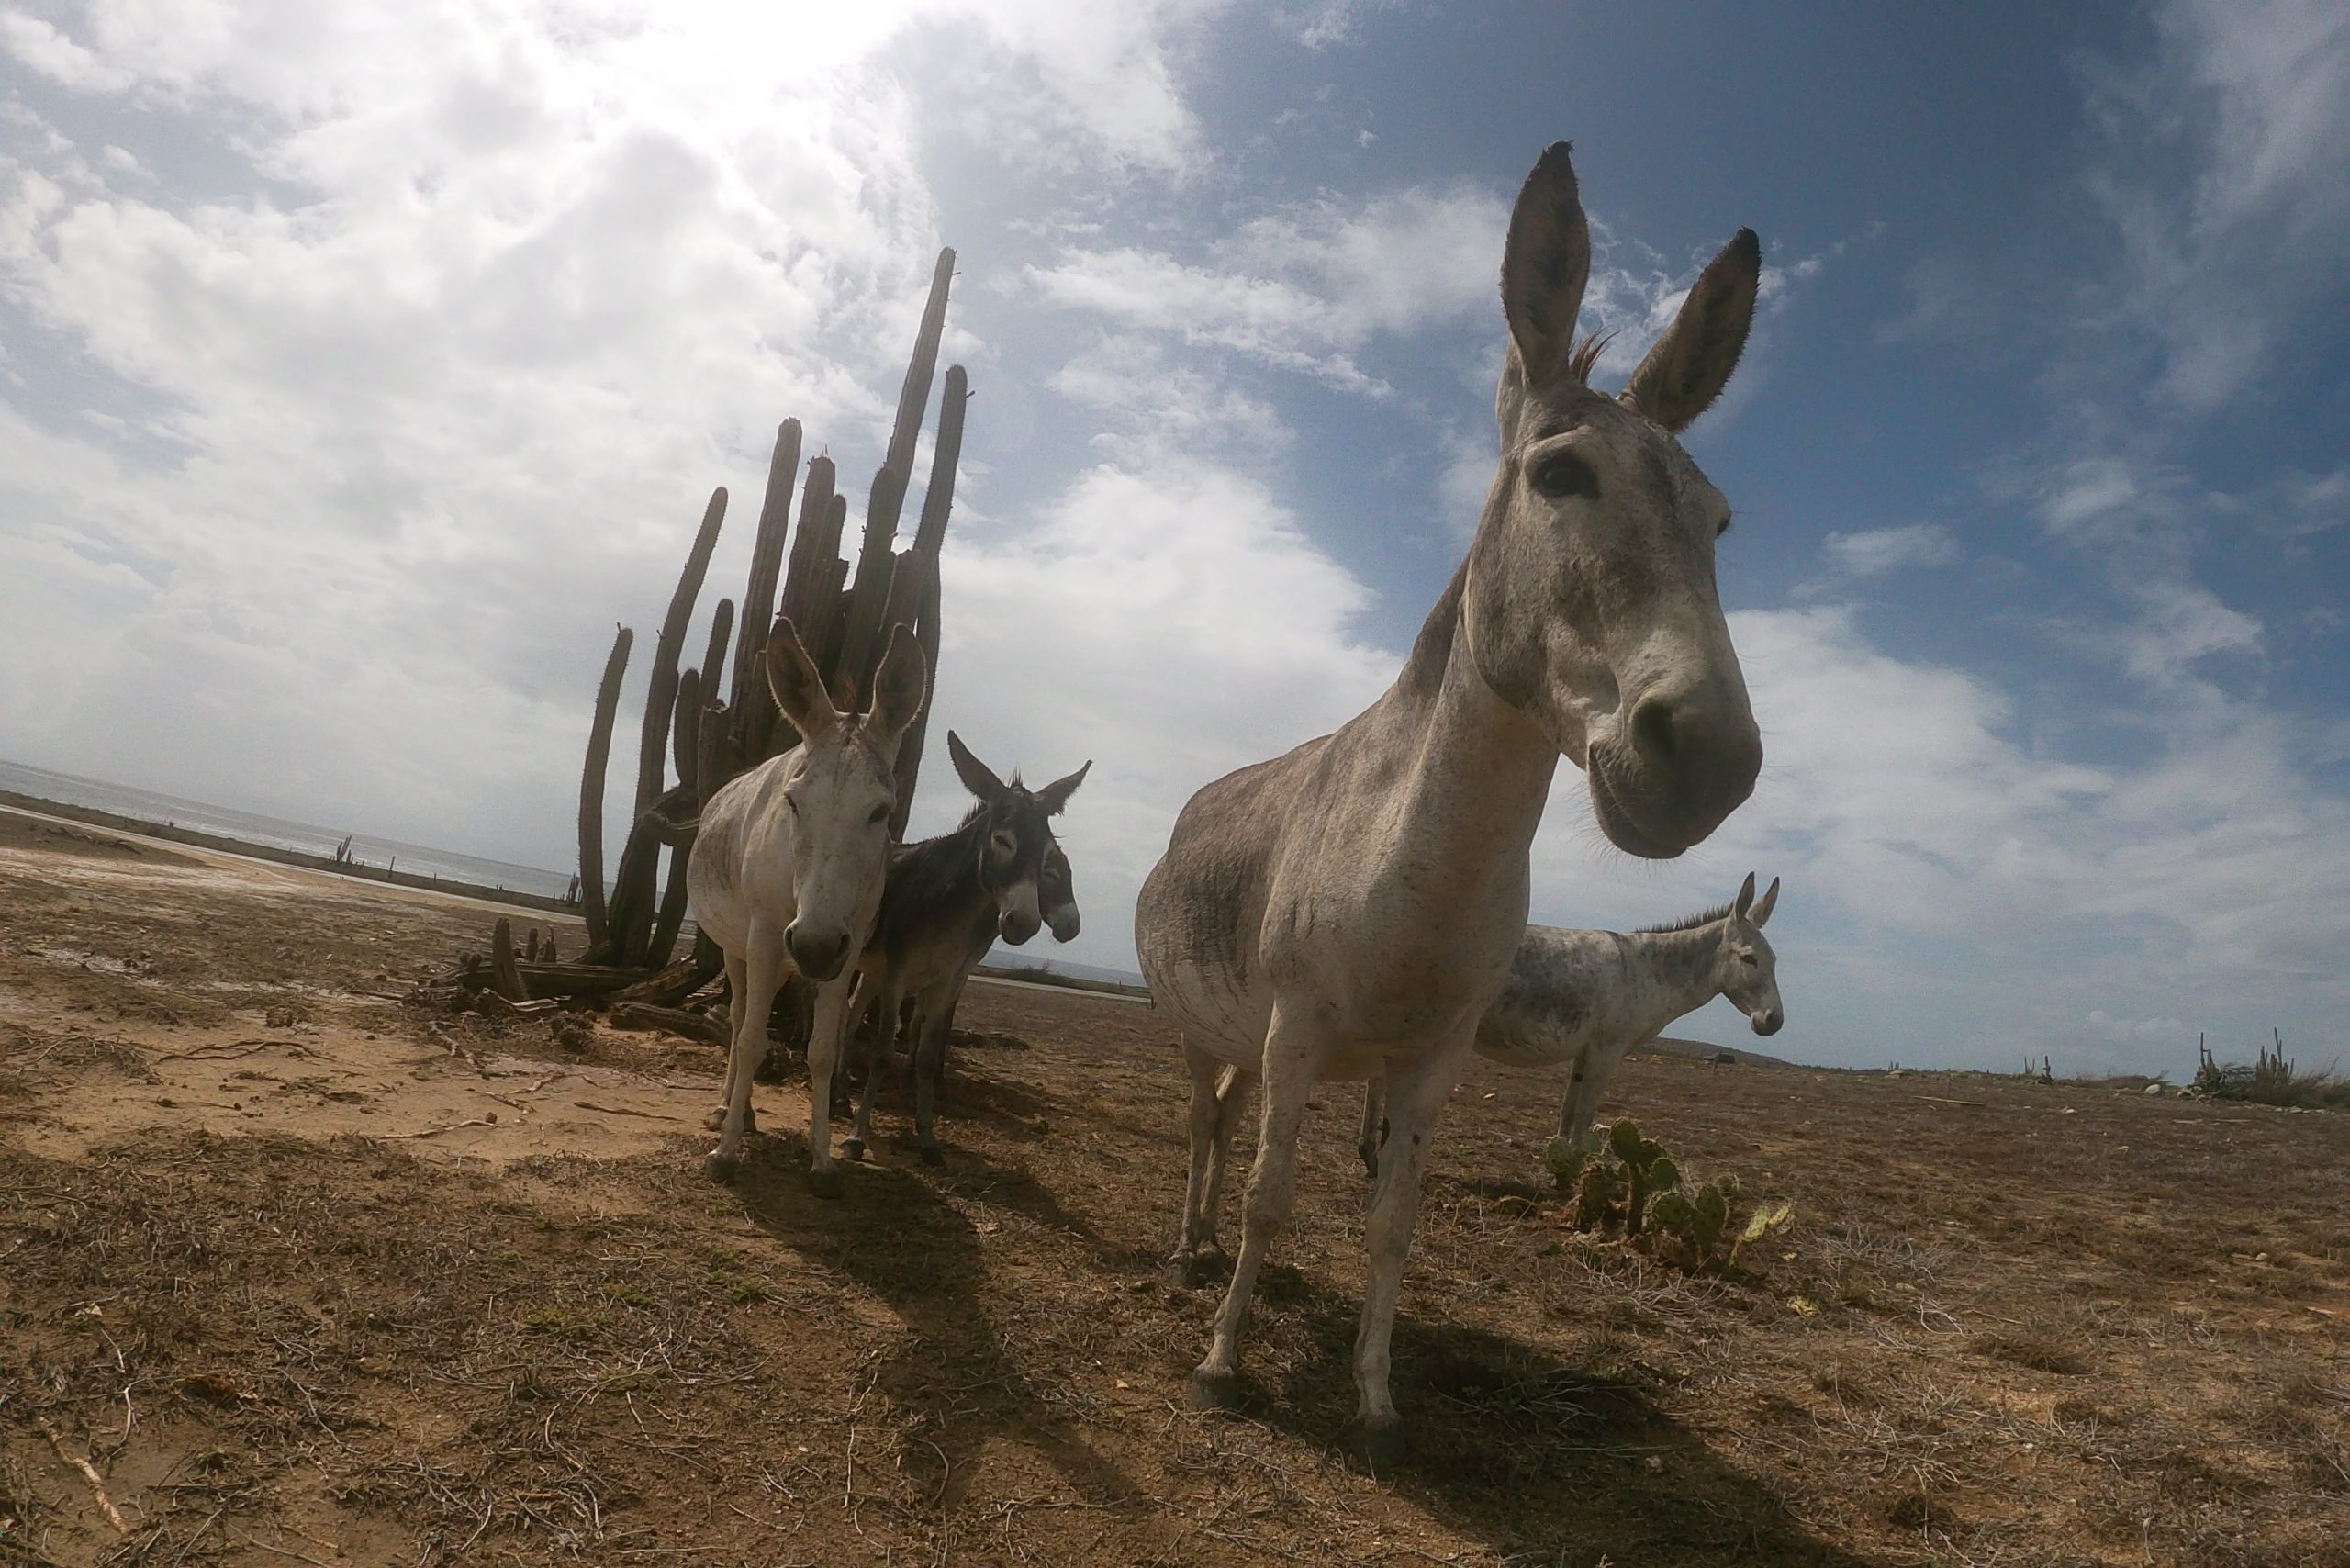 Donkeys near Baby Beach